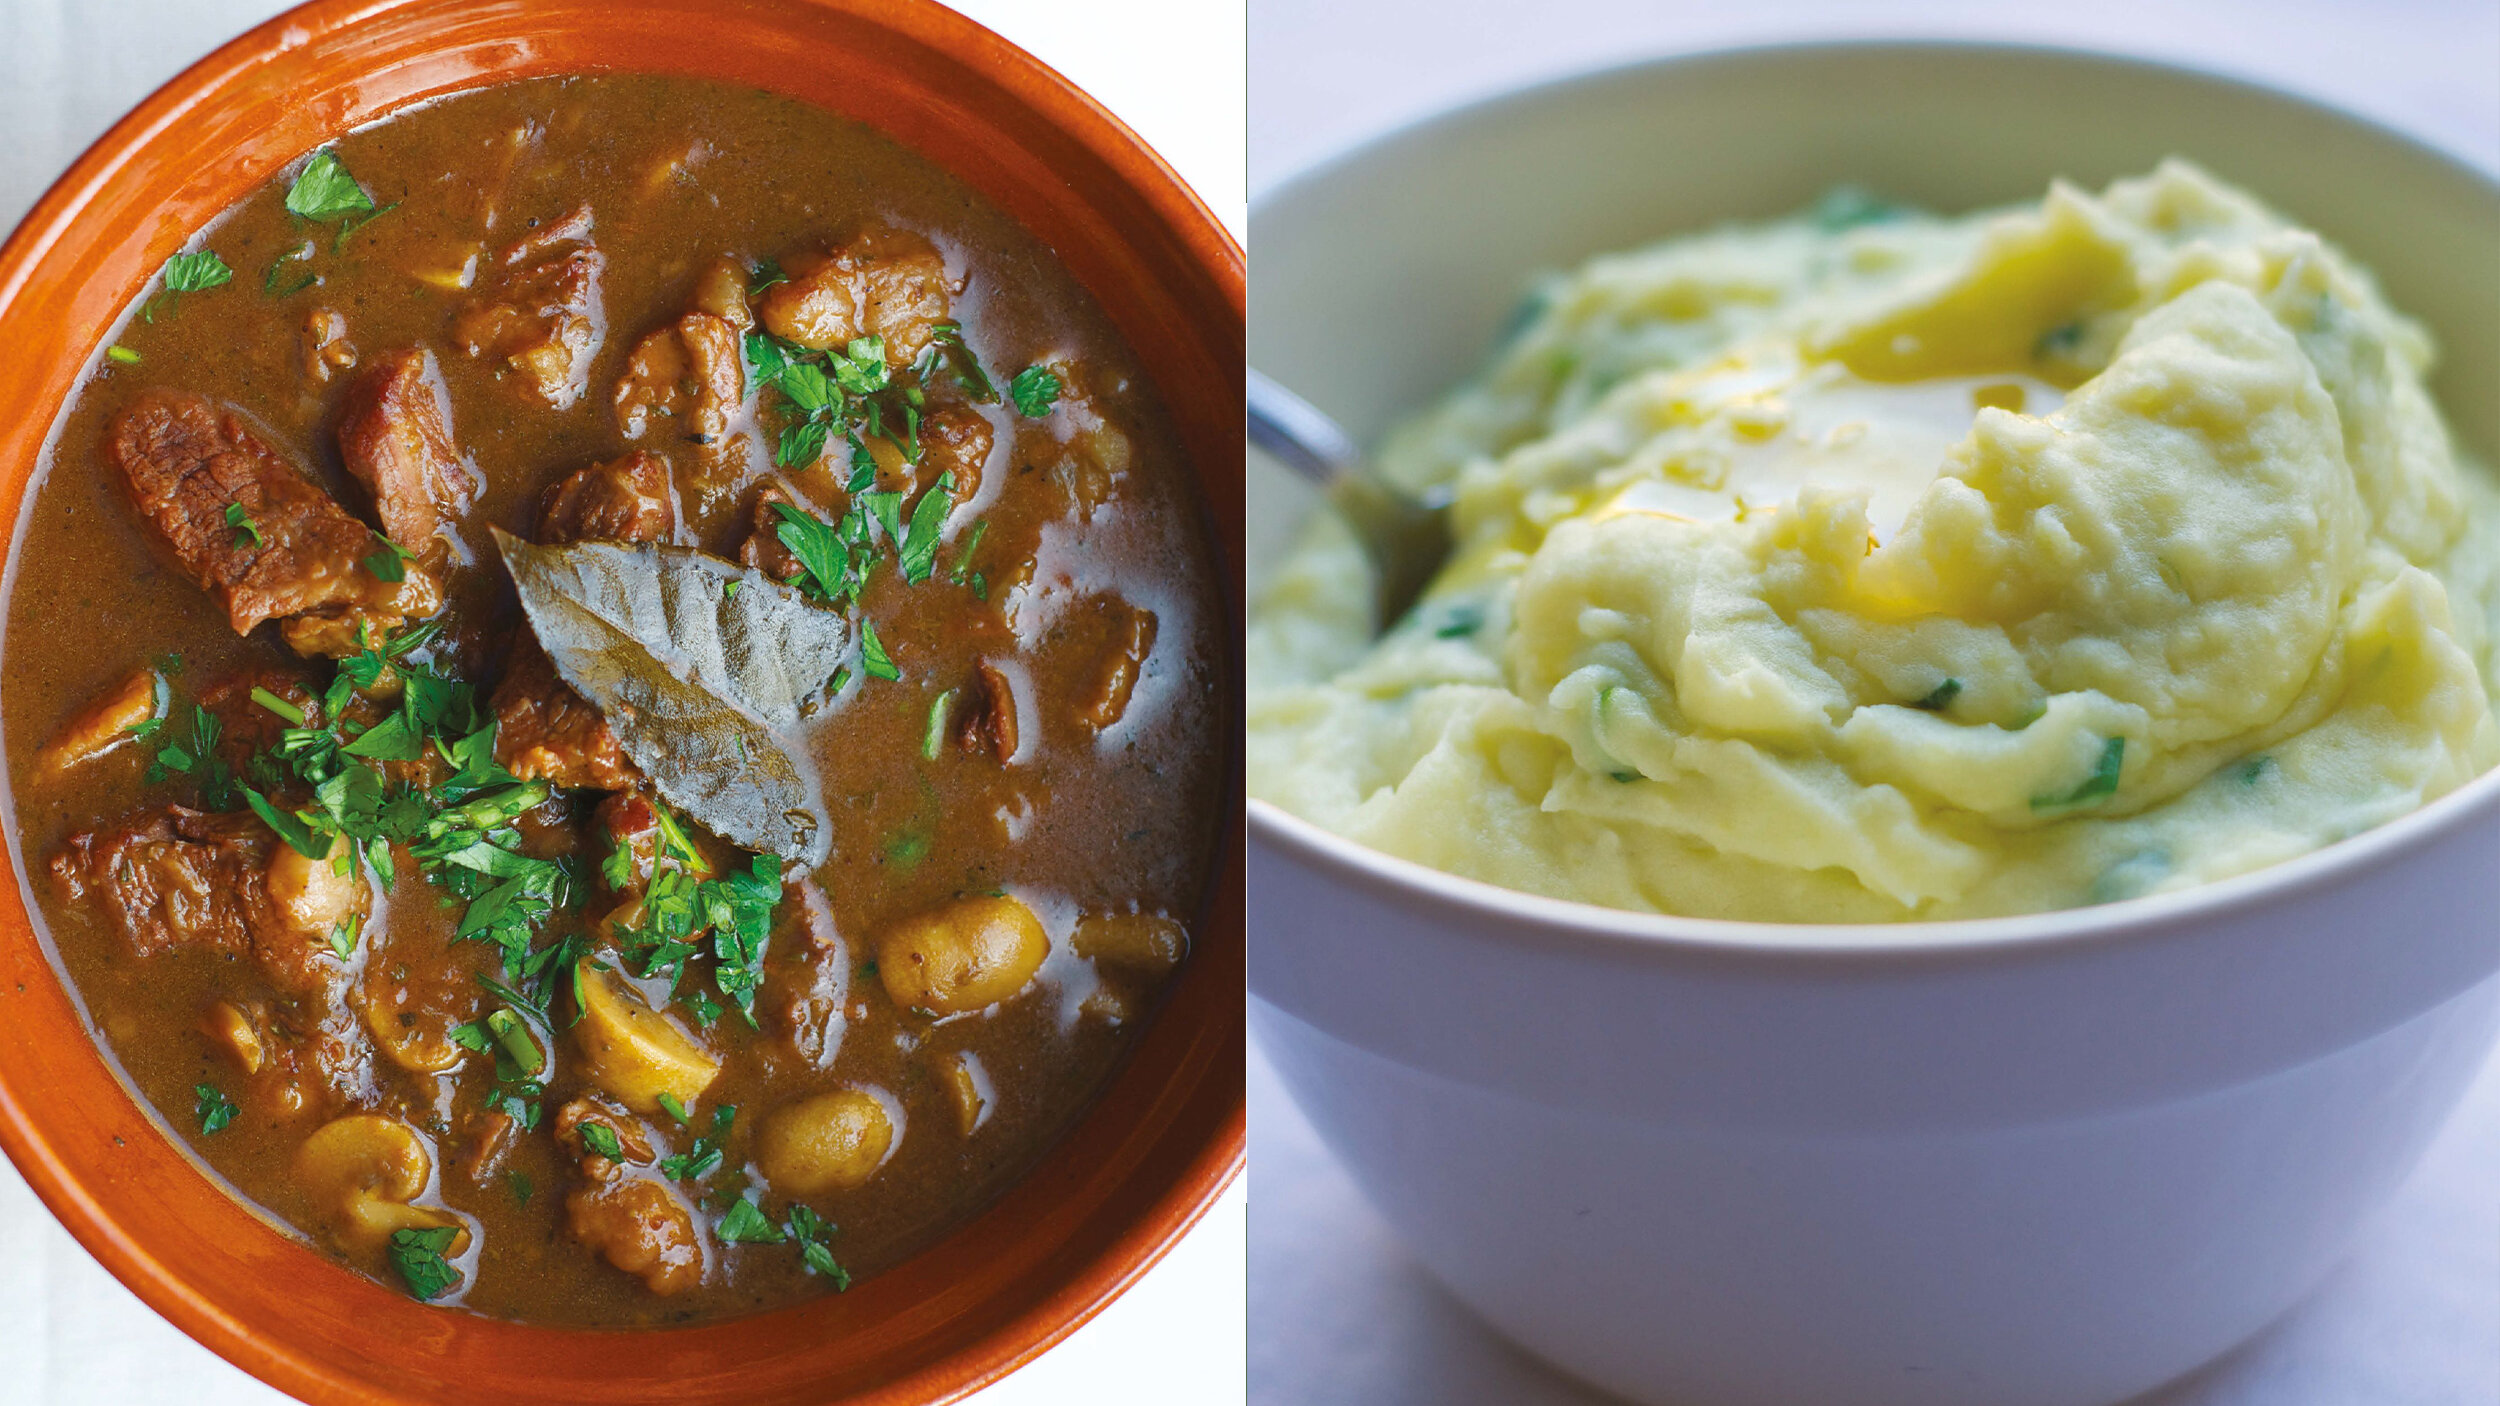 All About Irish Food With Author David Bowers